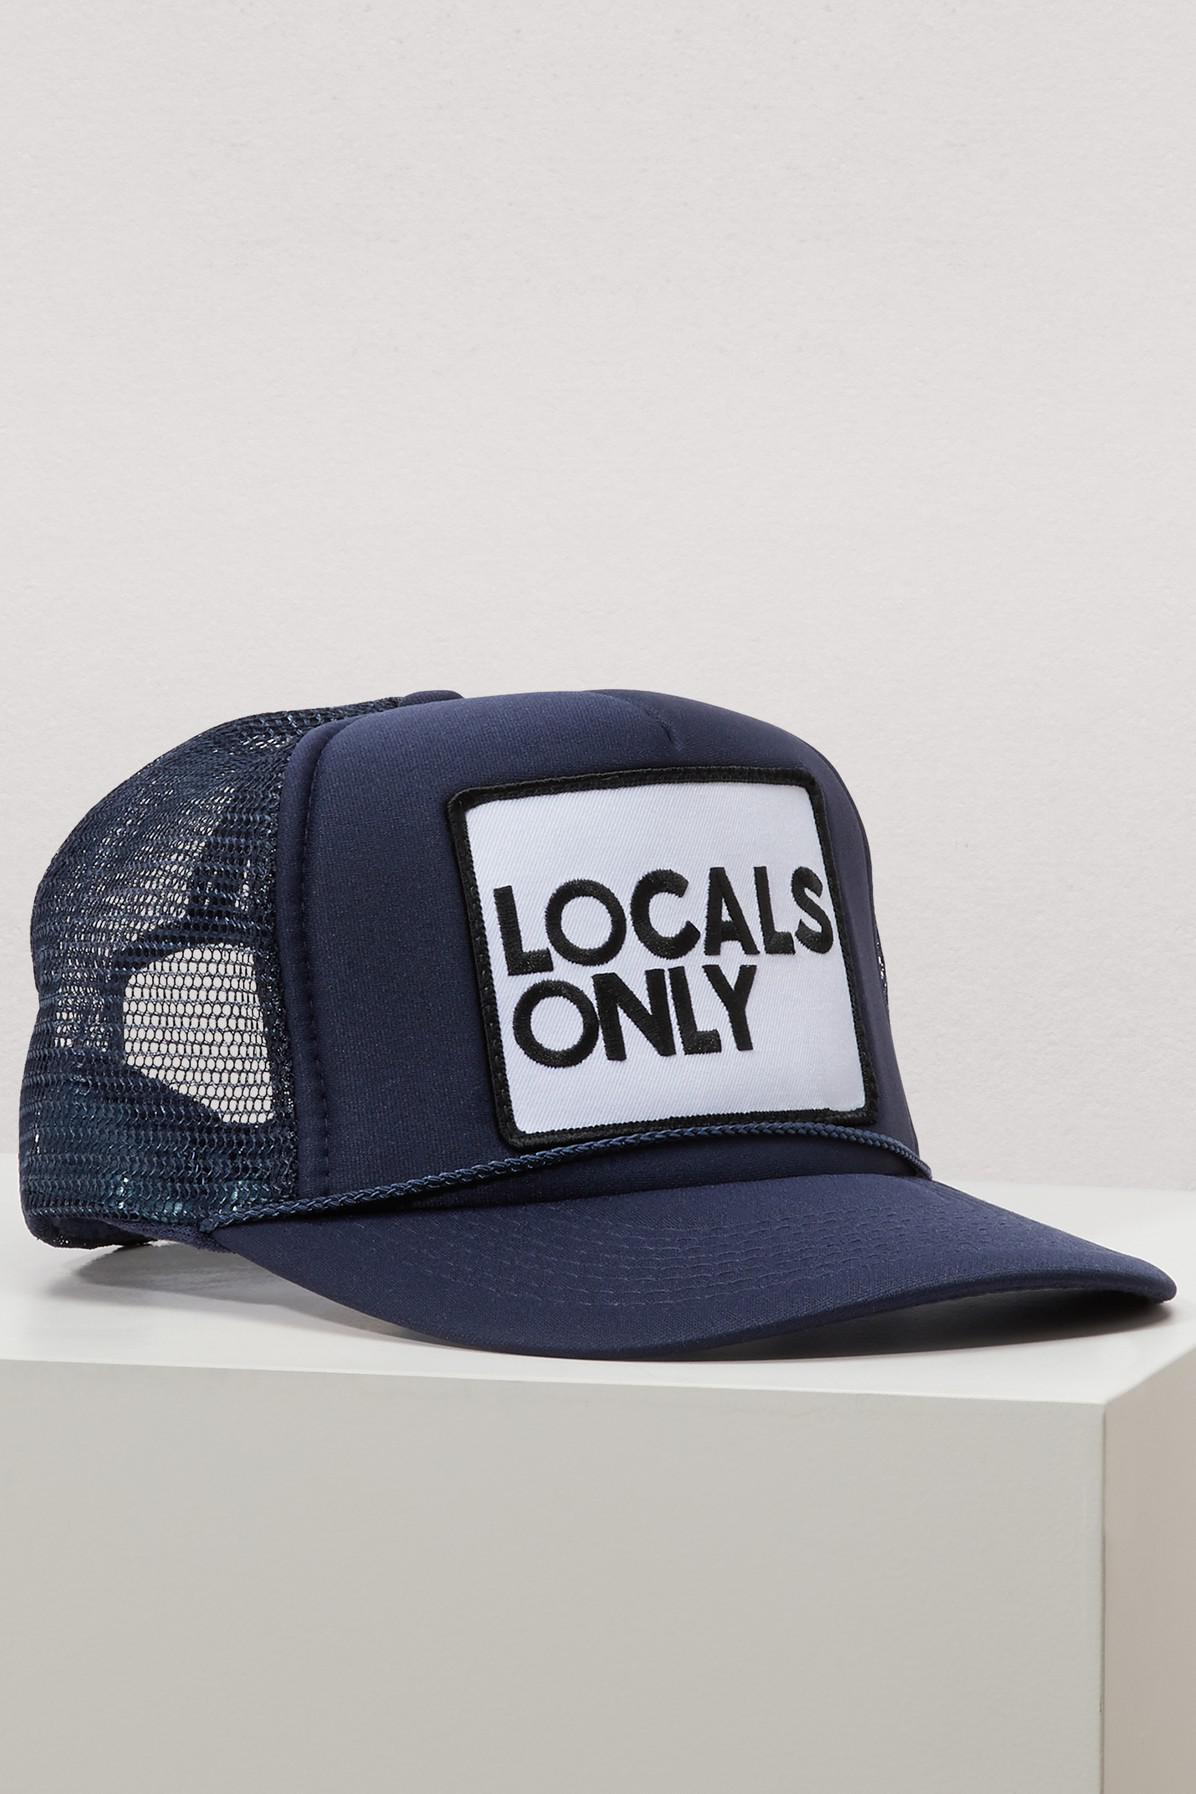 7c642b5ee7a Aviator Nation Cotton Locals Only Cap in Blue - Lyst